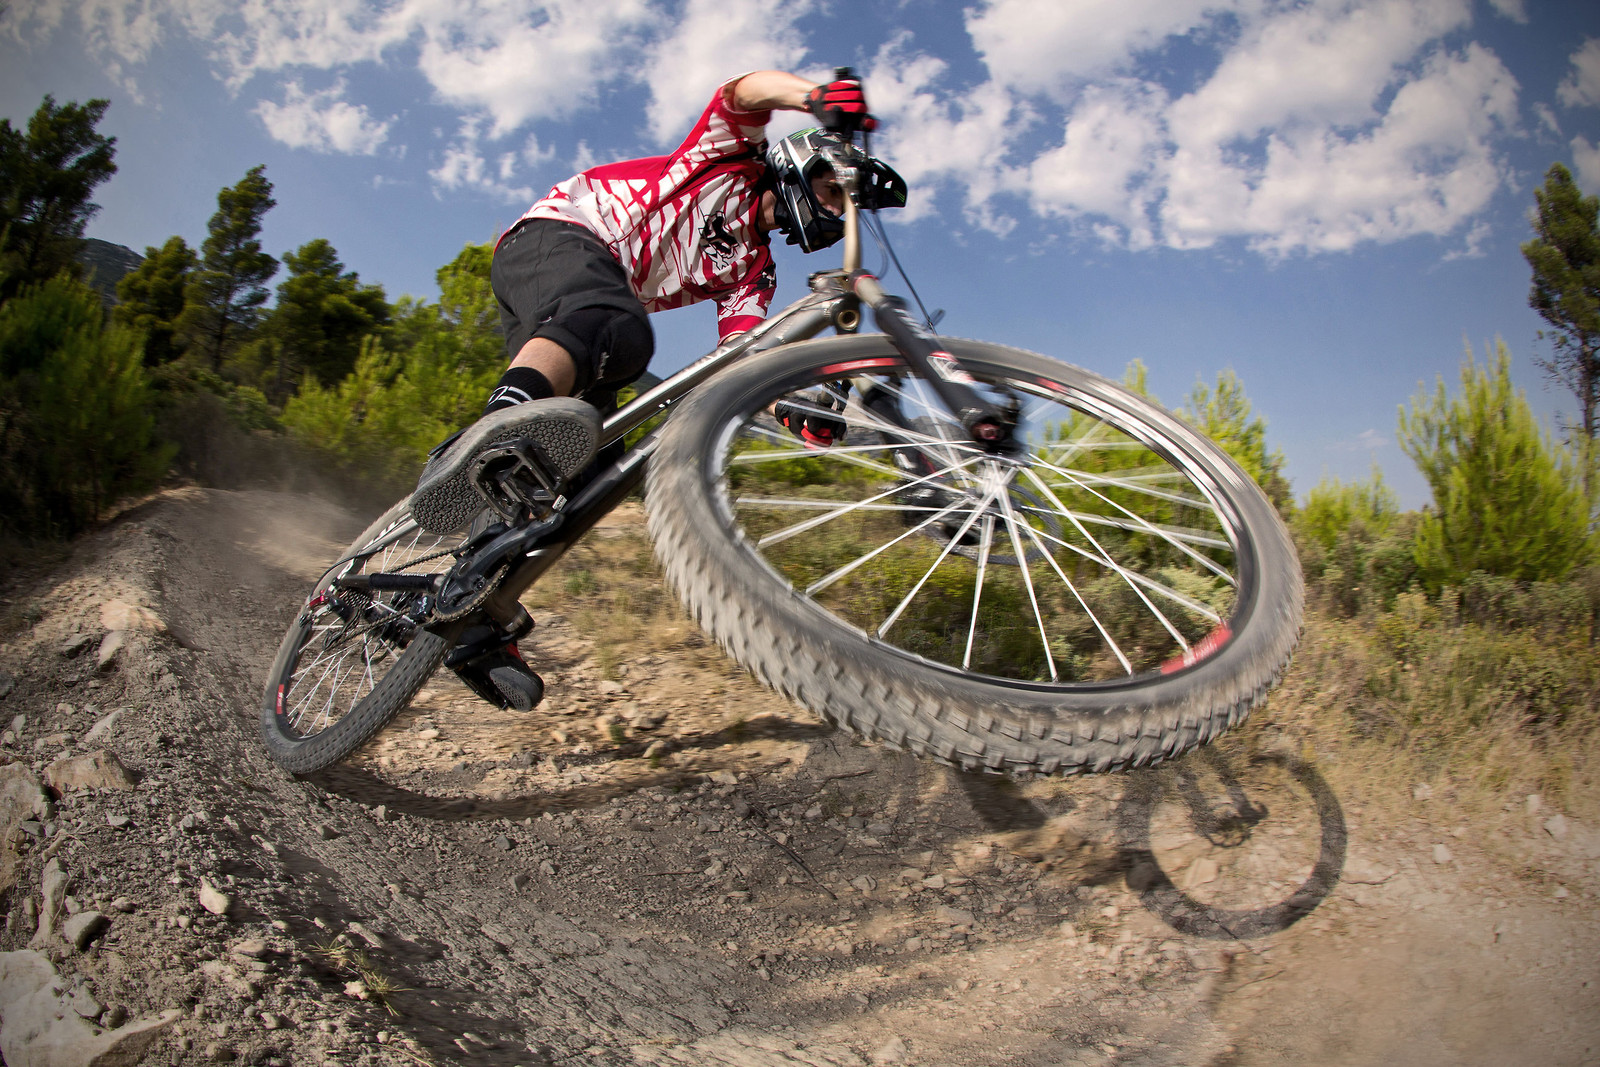 korf at mount parnitha - pappoulakos - Mountain Biking Pictures - Vital MTB